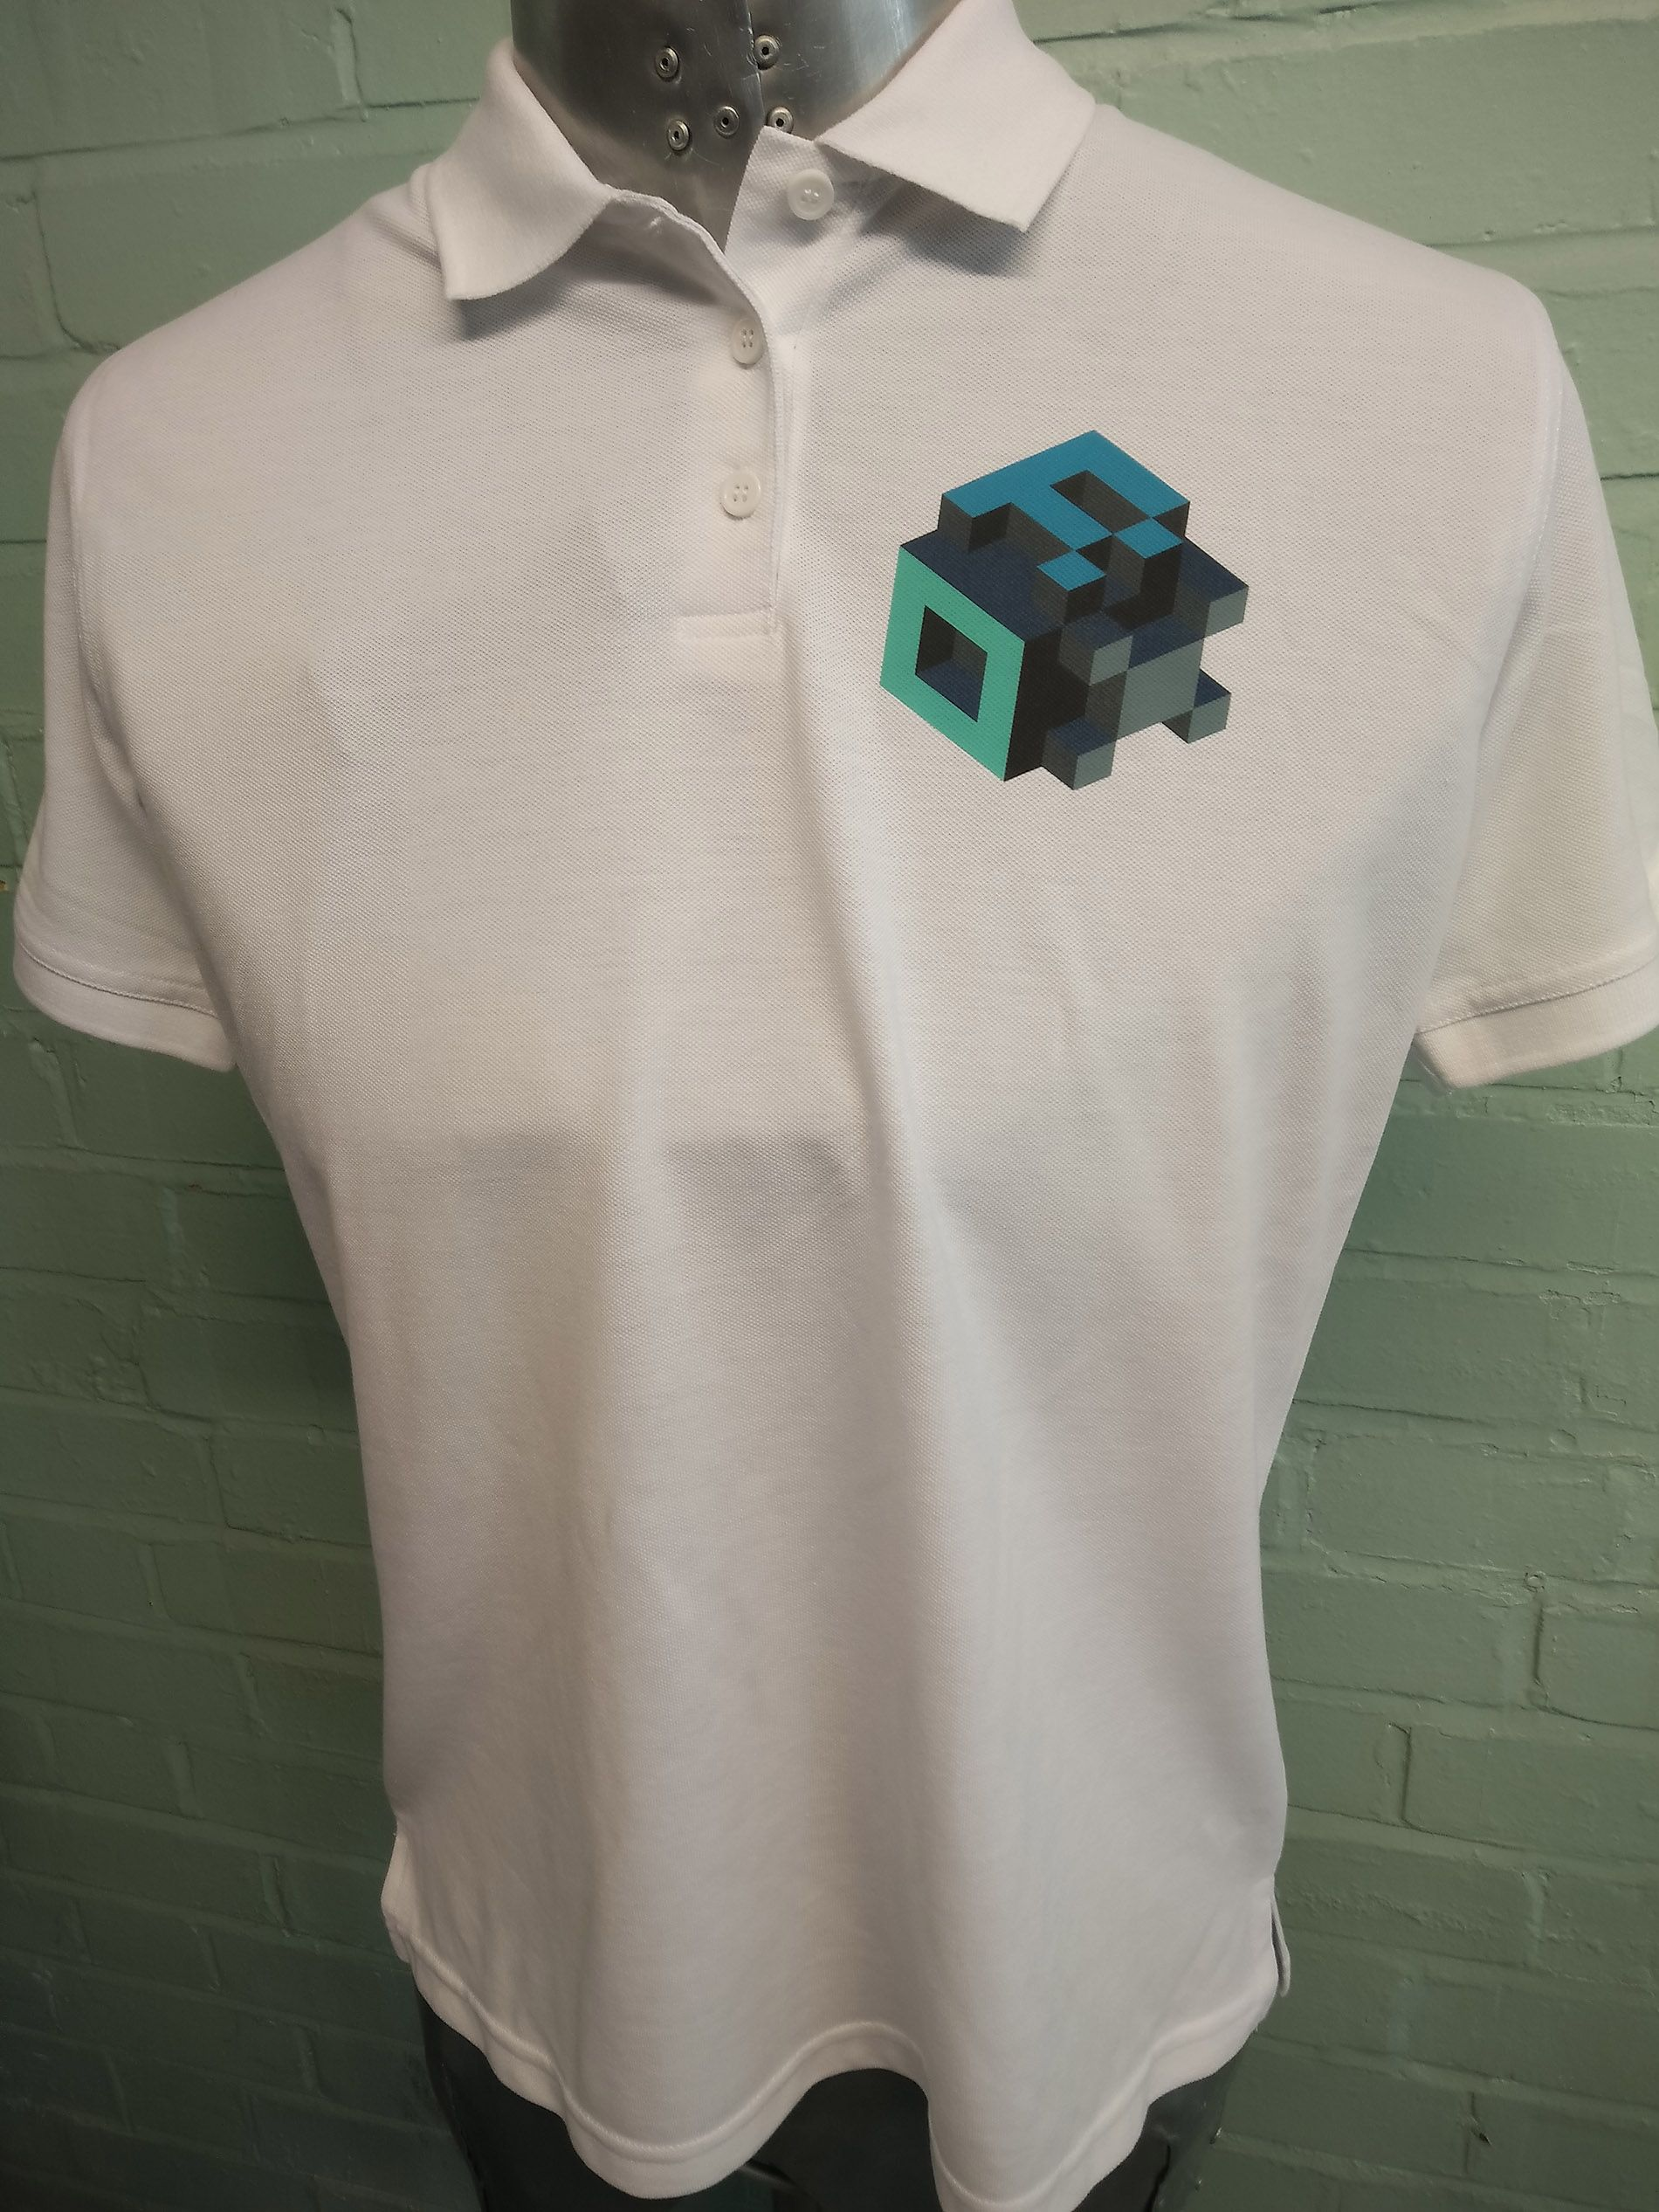 Looking Great For Rox 4 These Corporate Work Polo T Shirts Have